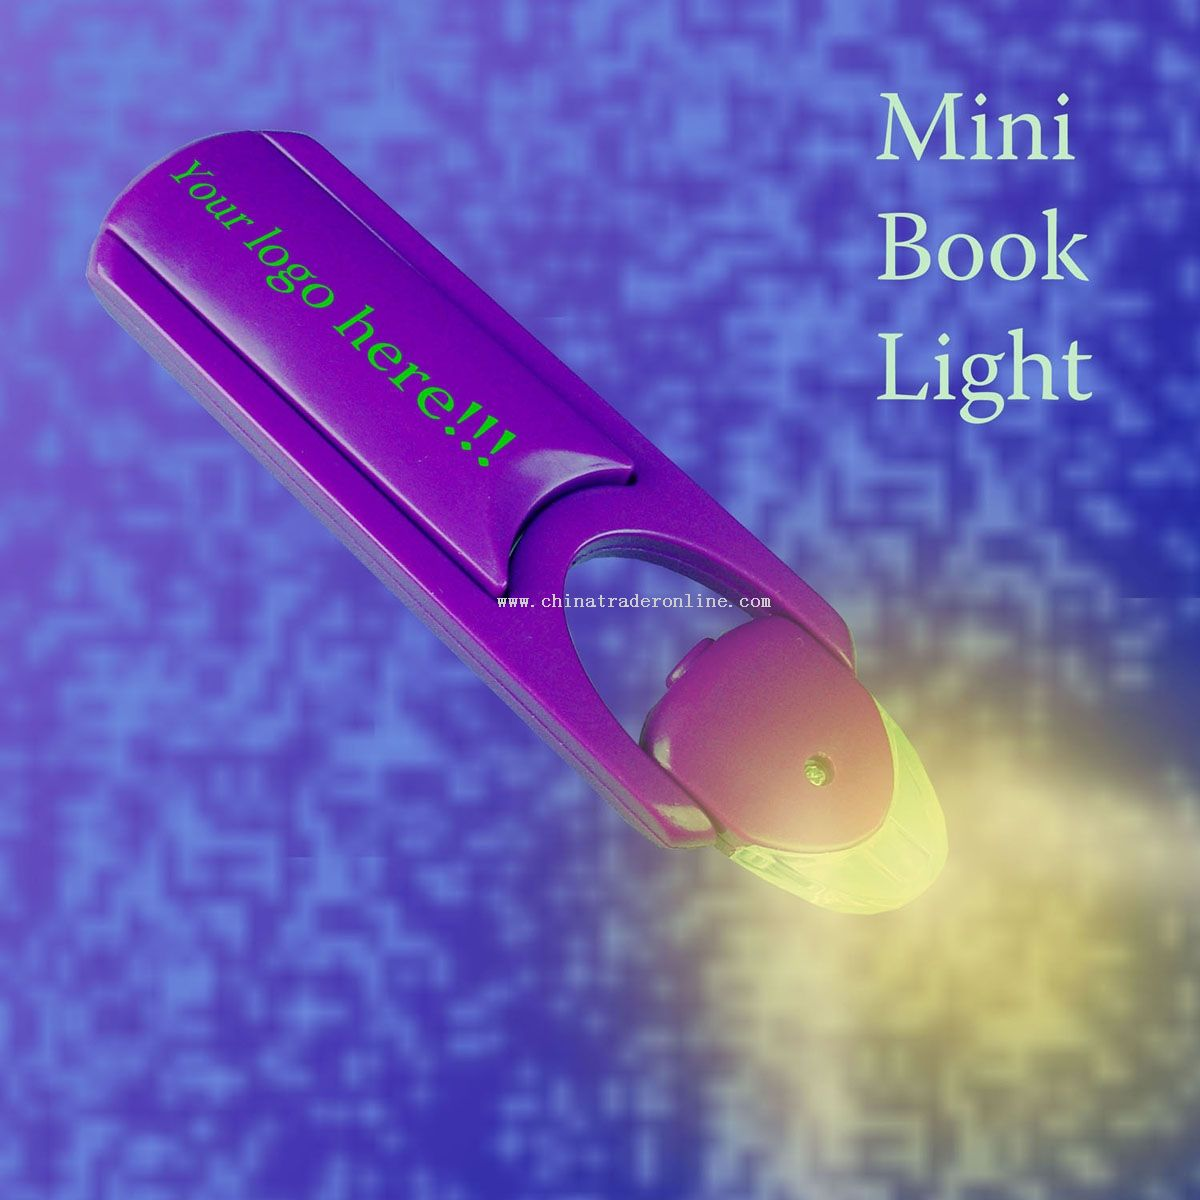 Lighted Book Light from China